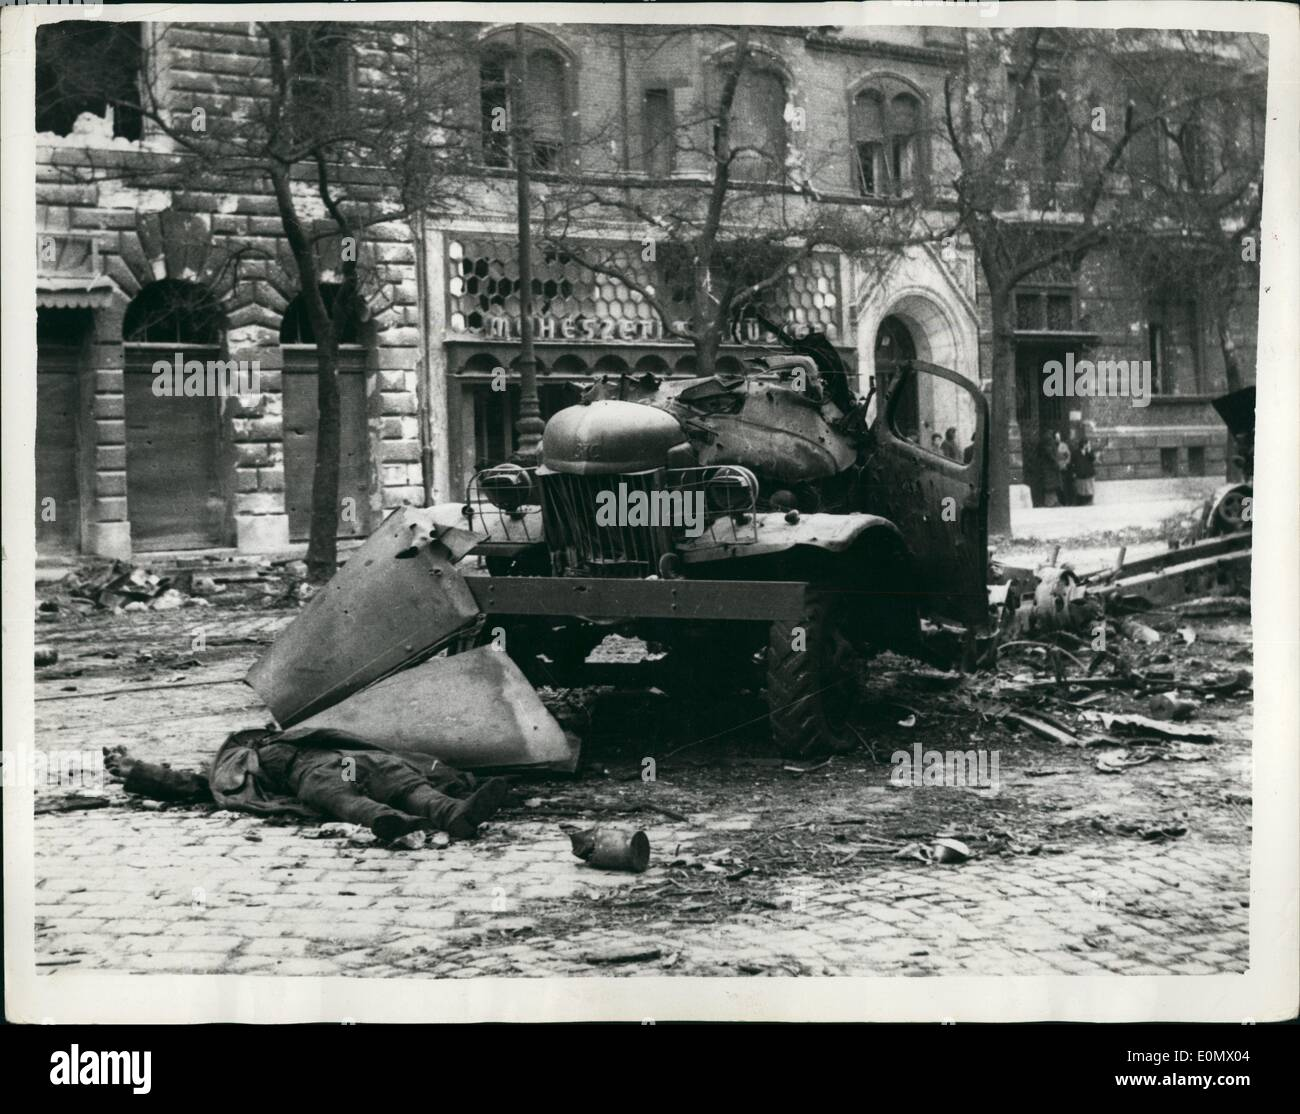 Oct. 10, 1956 - Battle scene in the streets of Budapest a Russian lies dead: Photo shows The devastating scene in Baross street - Stock Image